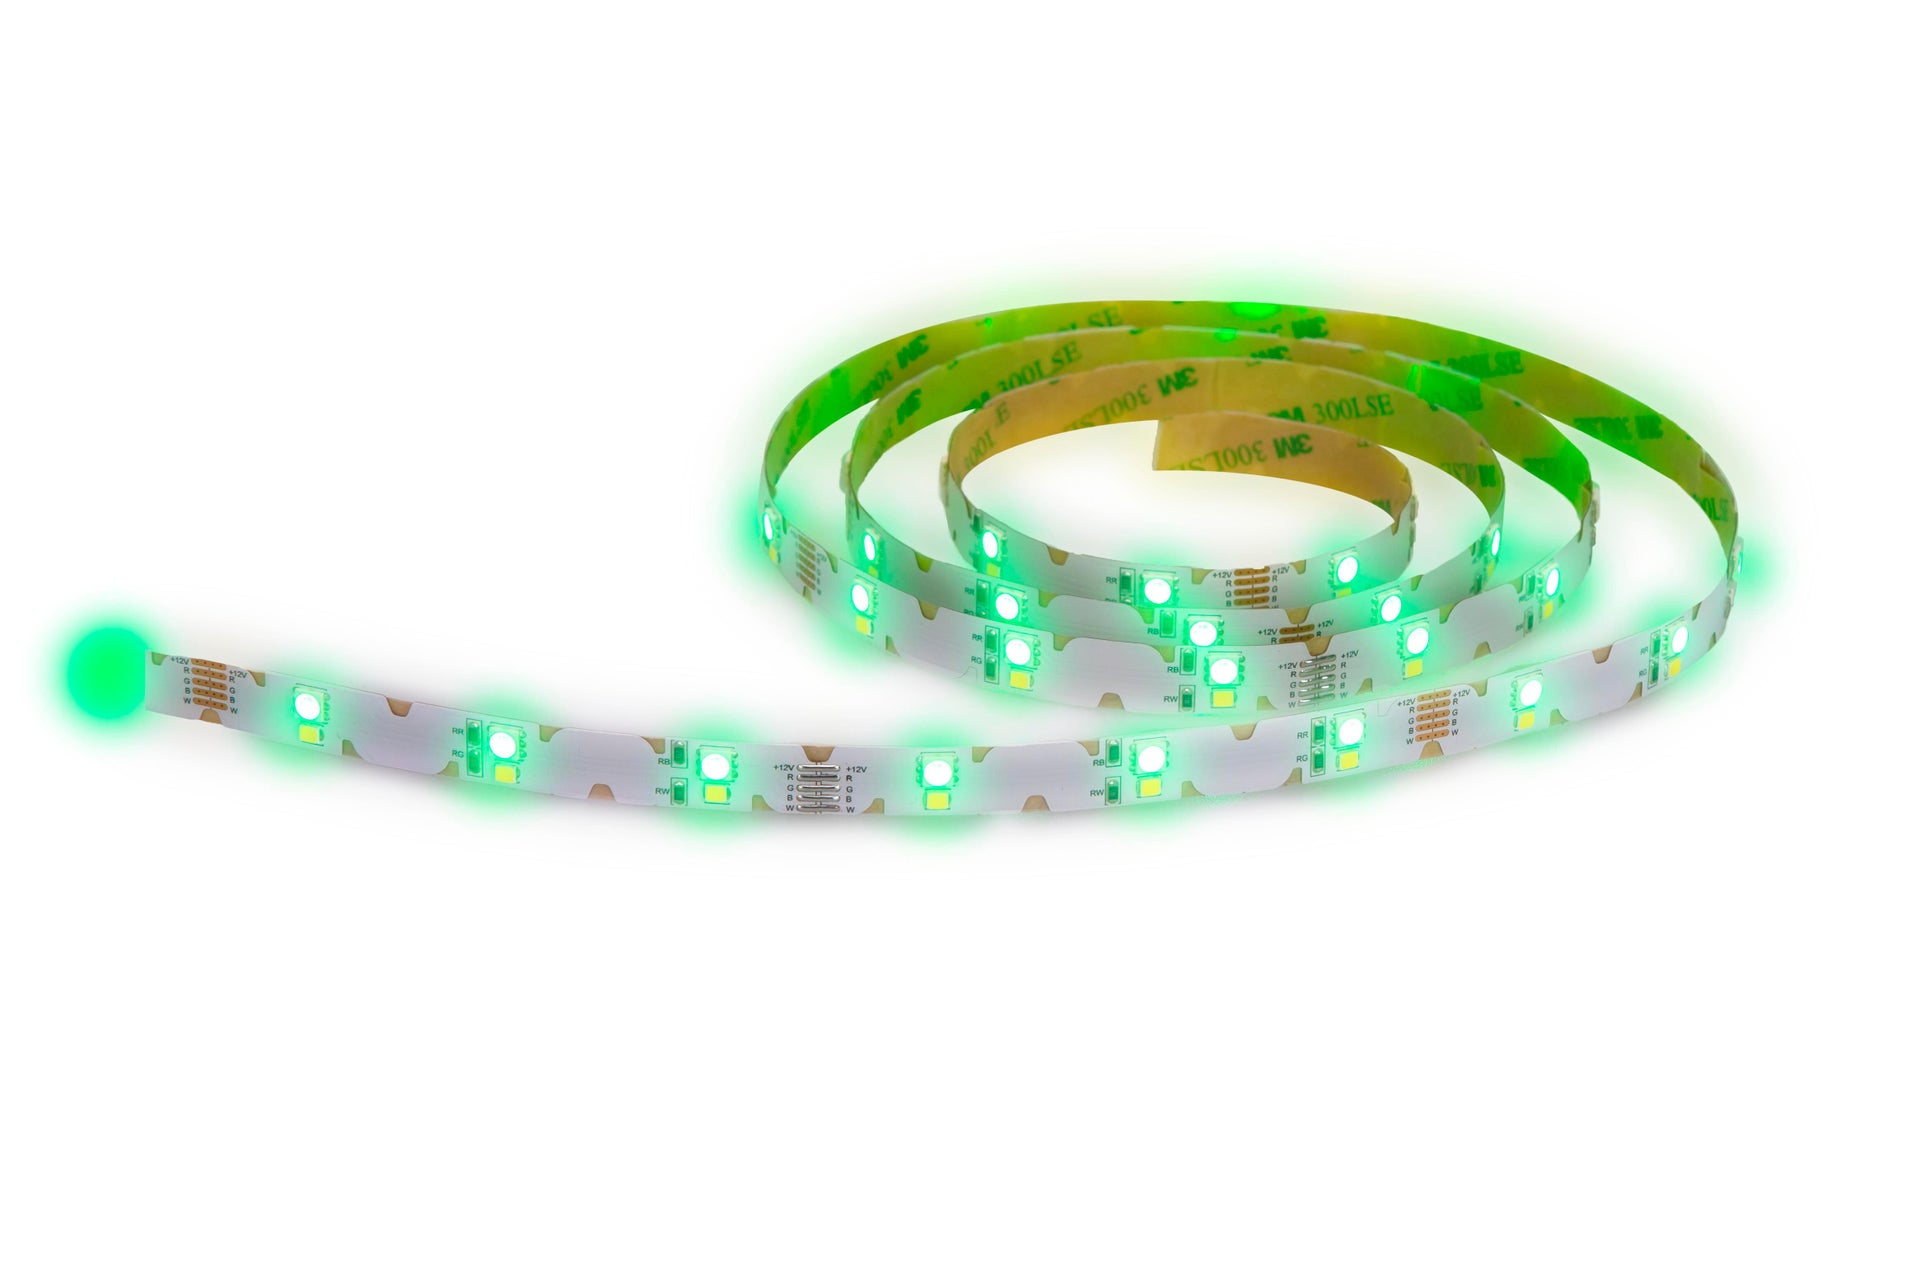 Striscia led Movaled 5m luce colore cangiante<multisep/>bianco 240LM IP20 INSPIRE - 3